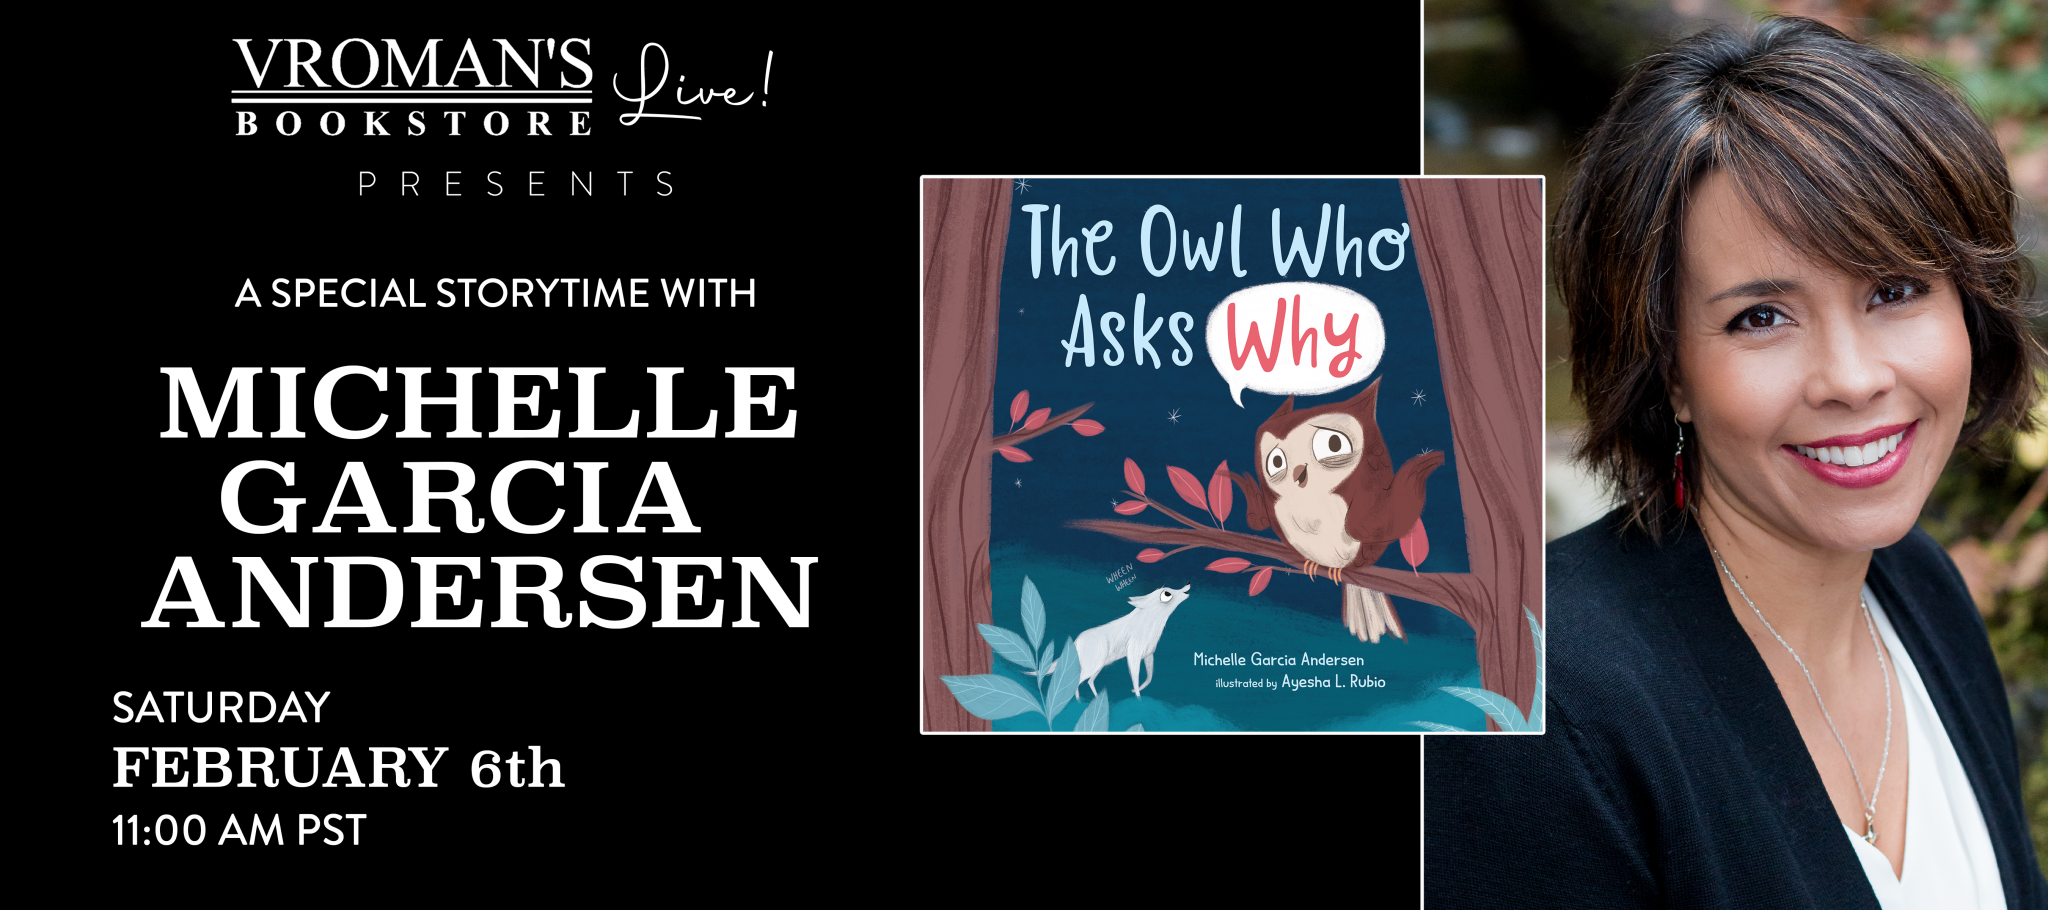 Vroman's Story Time 'The Owl Who Asks Why'